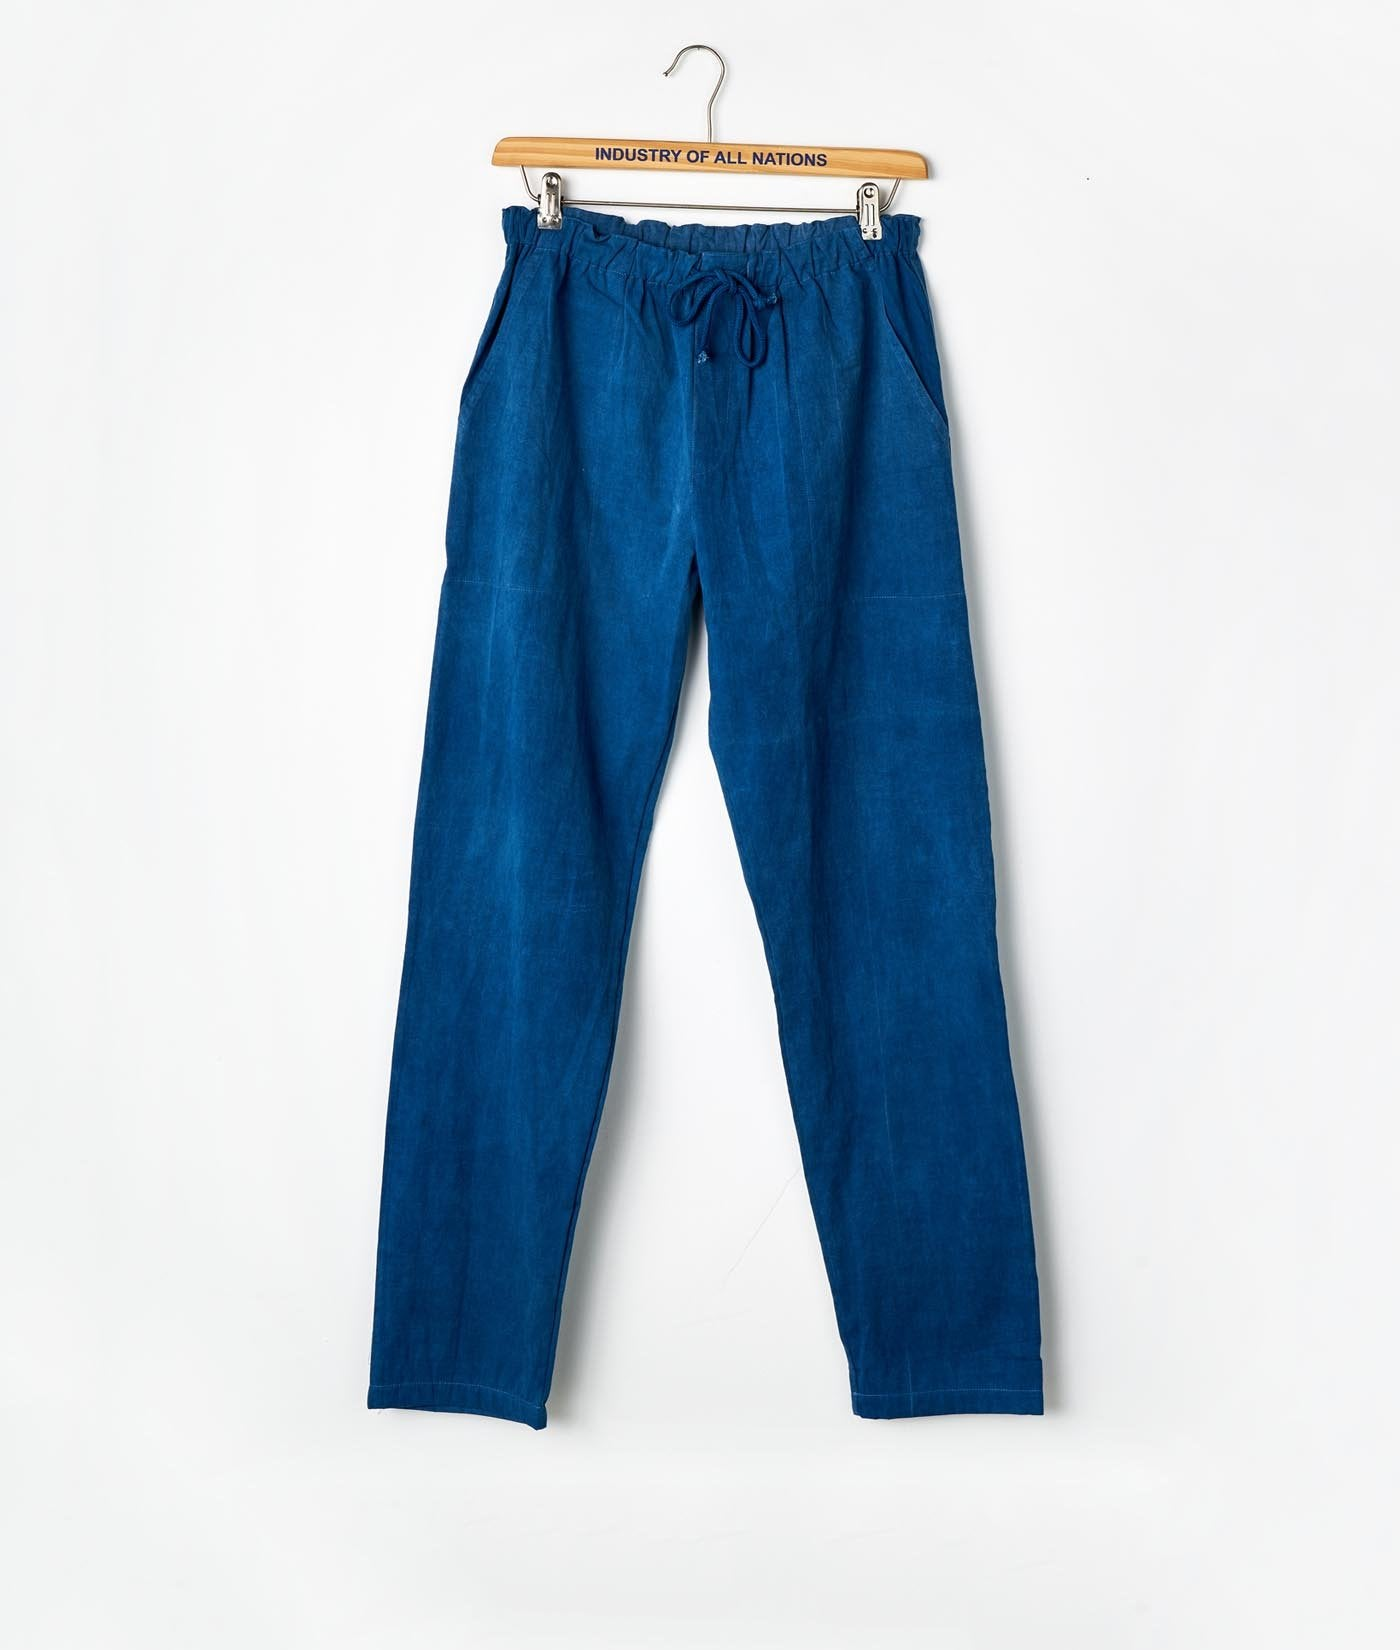 Industry of All Nations Organic Cotton Drawstring Pants Indigo 6